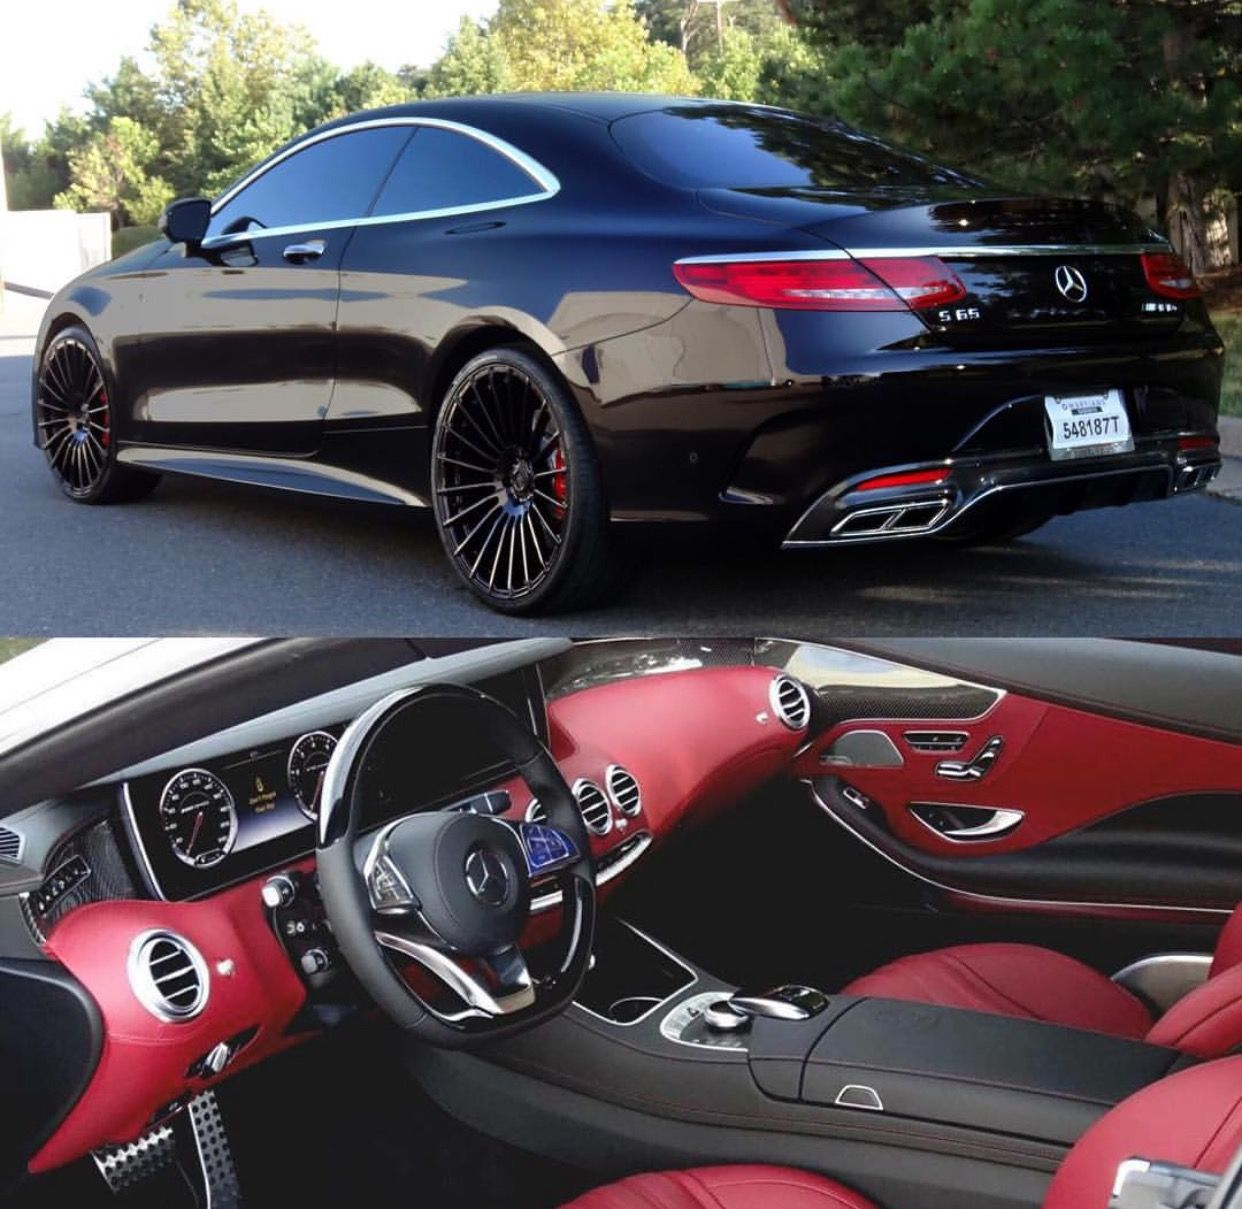 Mercedes Benz Amg S63 Follow Uber Luxury For More Via: Pin By Mean Gene On Hot Rides